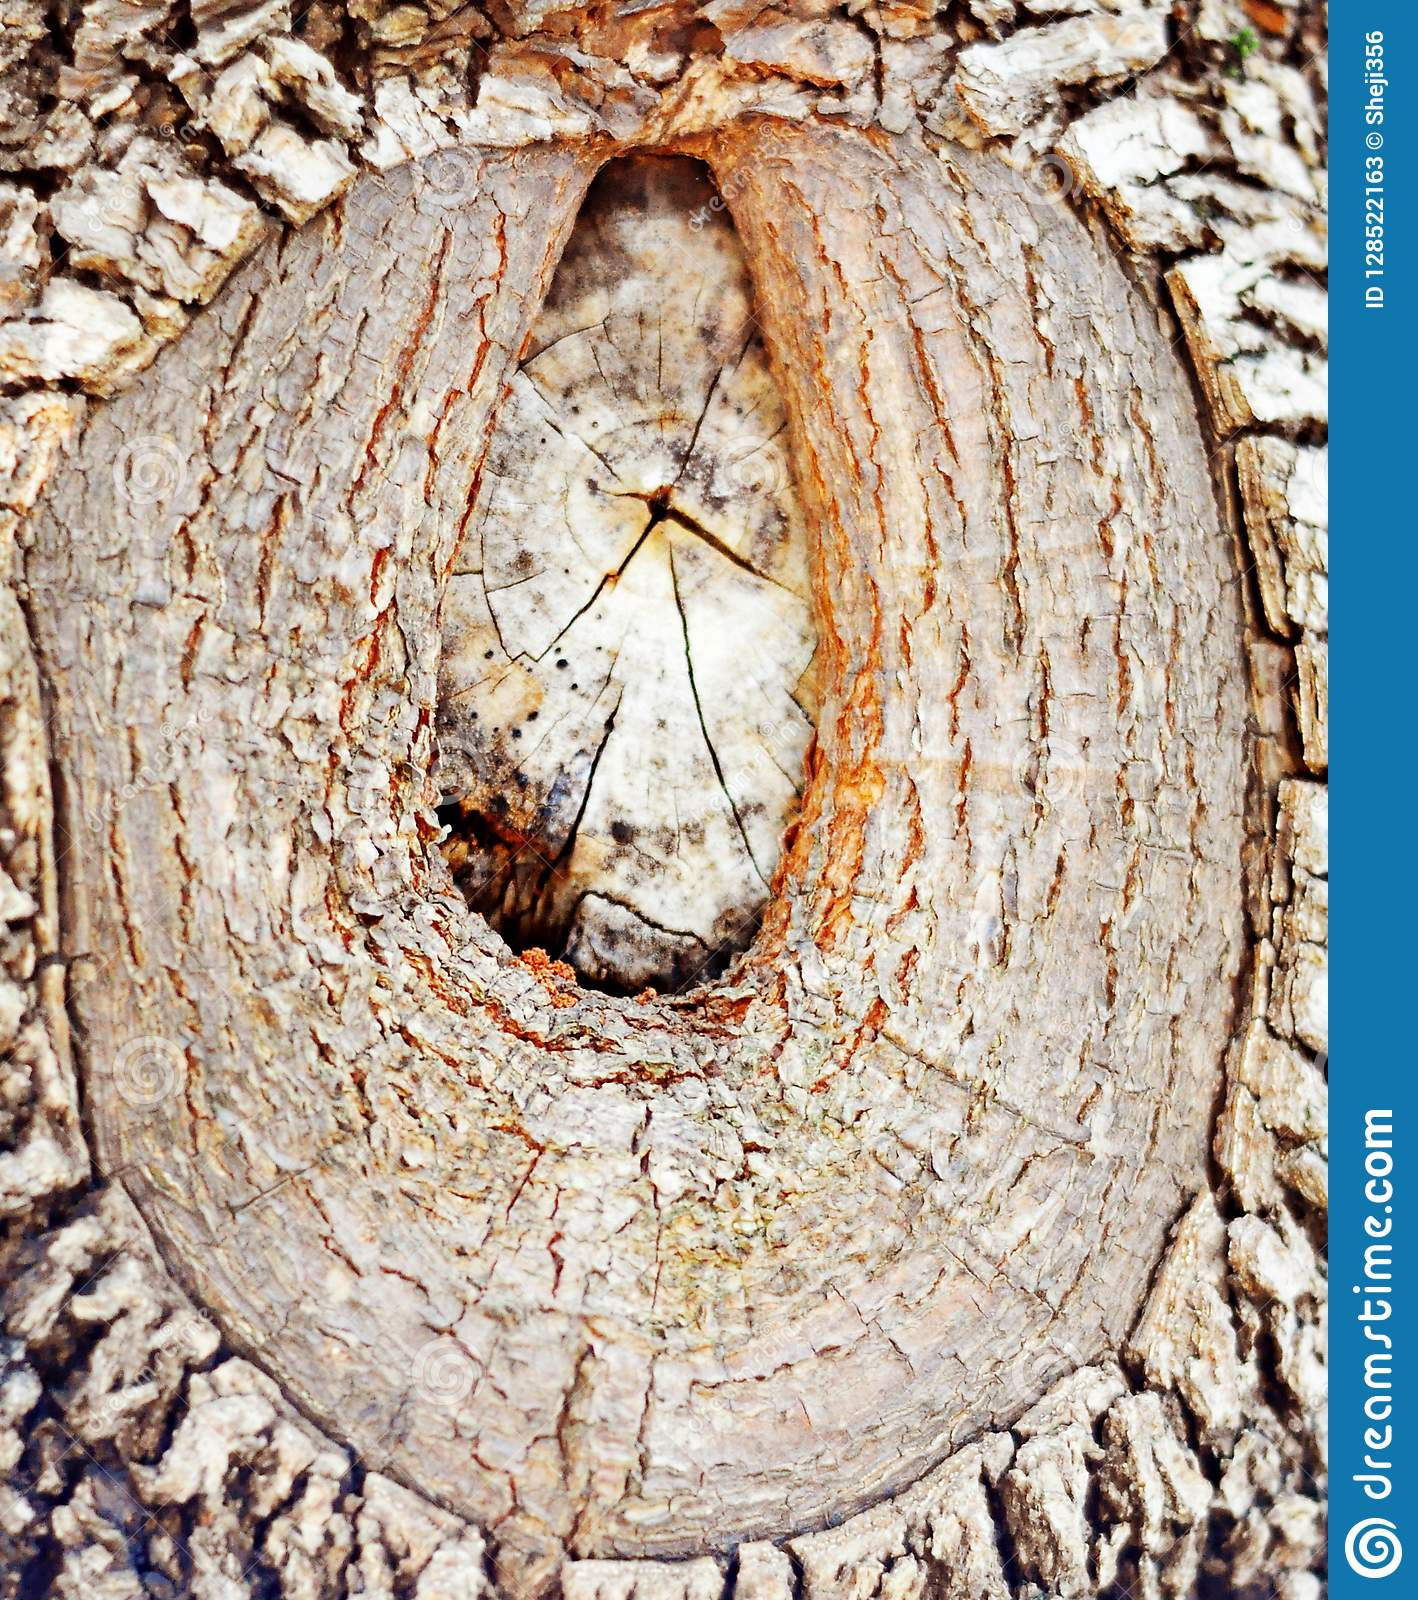 A Wood Grain On The Big Tree, Very Artistic Stock Image